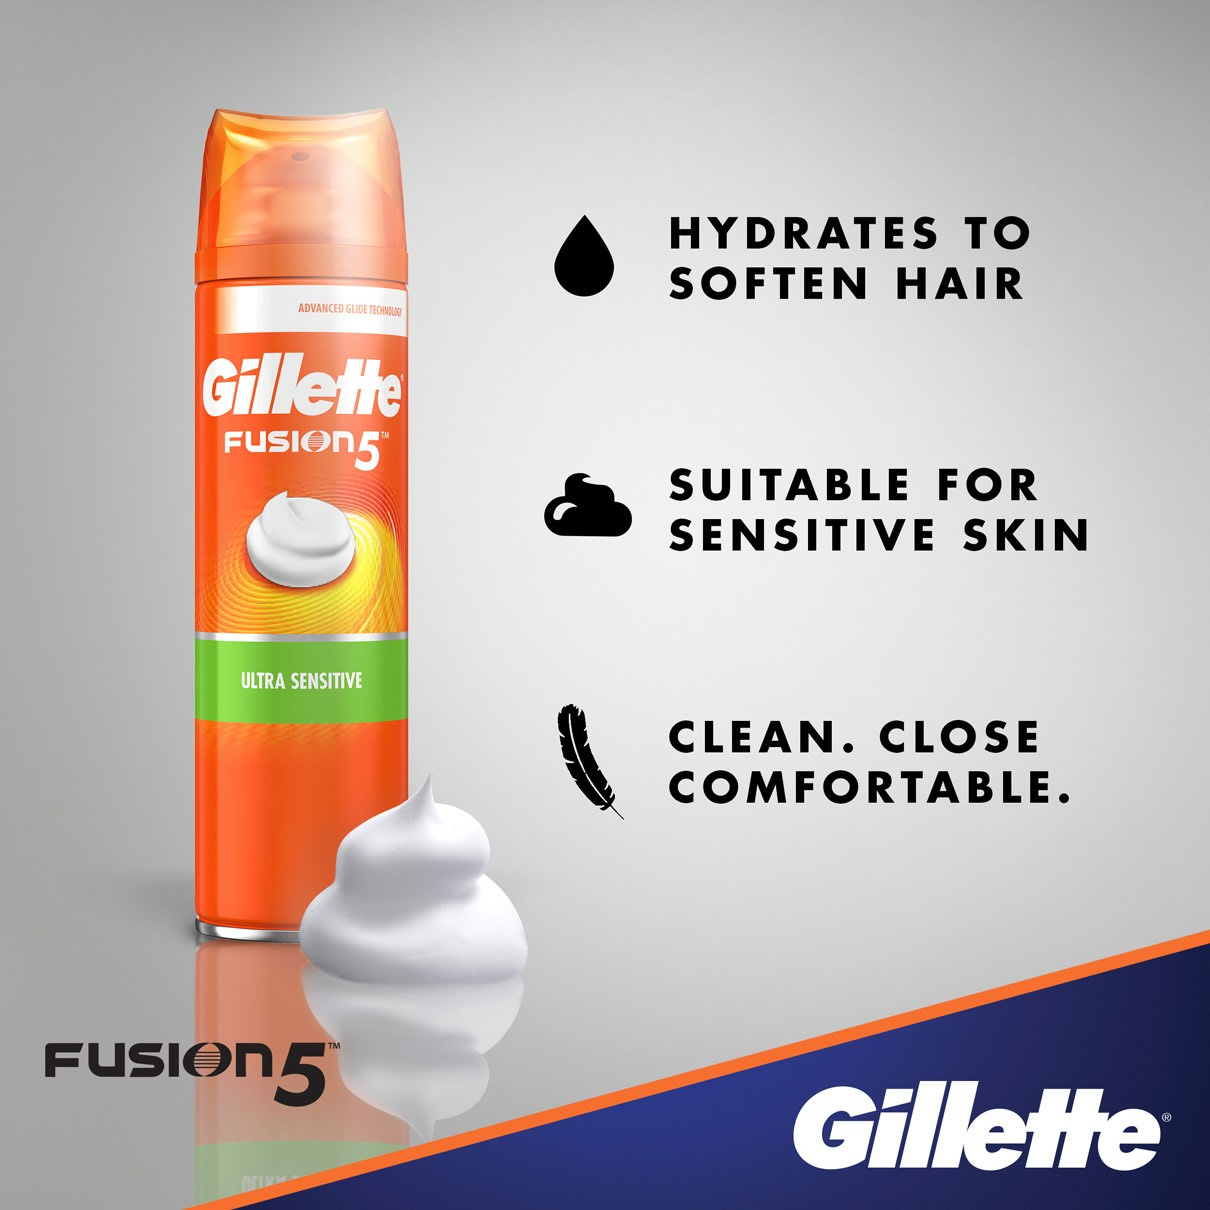 Hydrates to Soften Hair I Gillette Fusion5 Ultra Sensitive Shave Foam